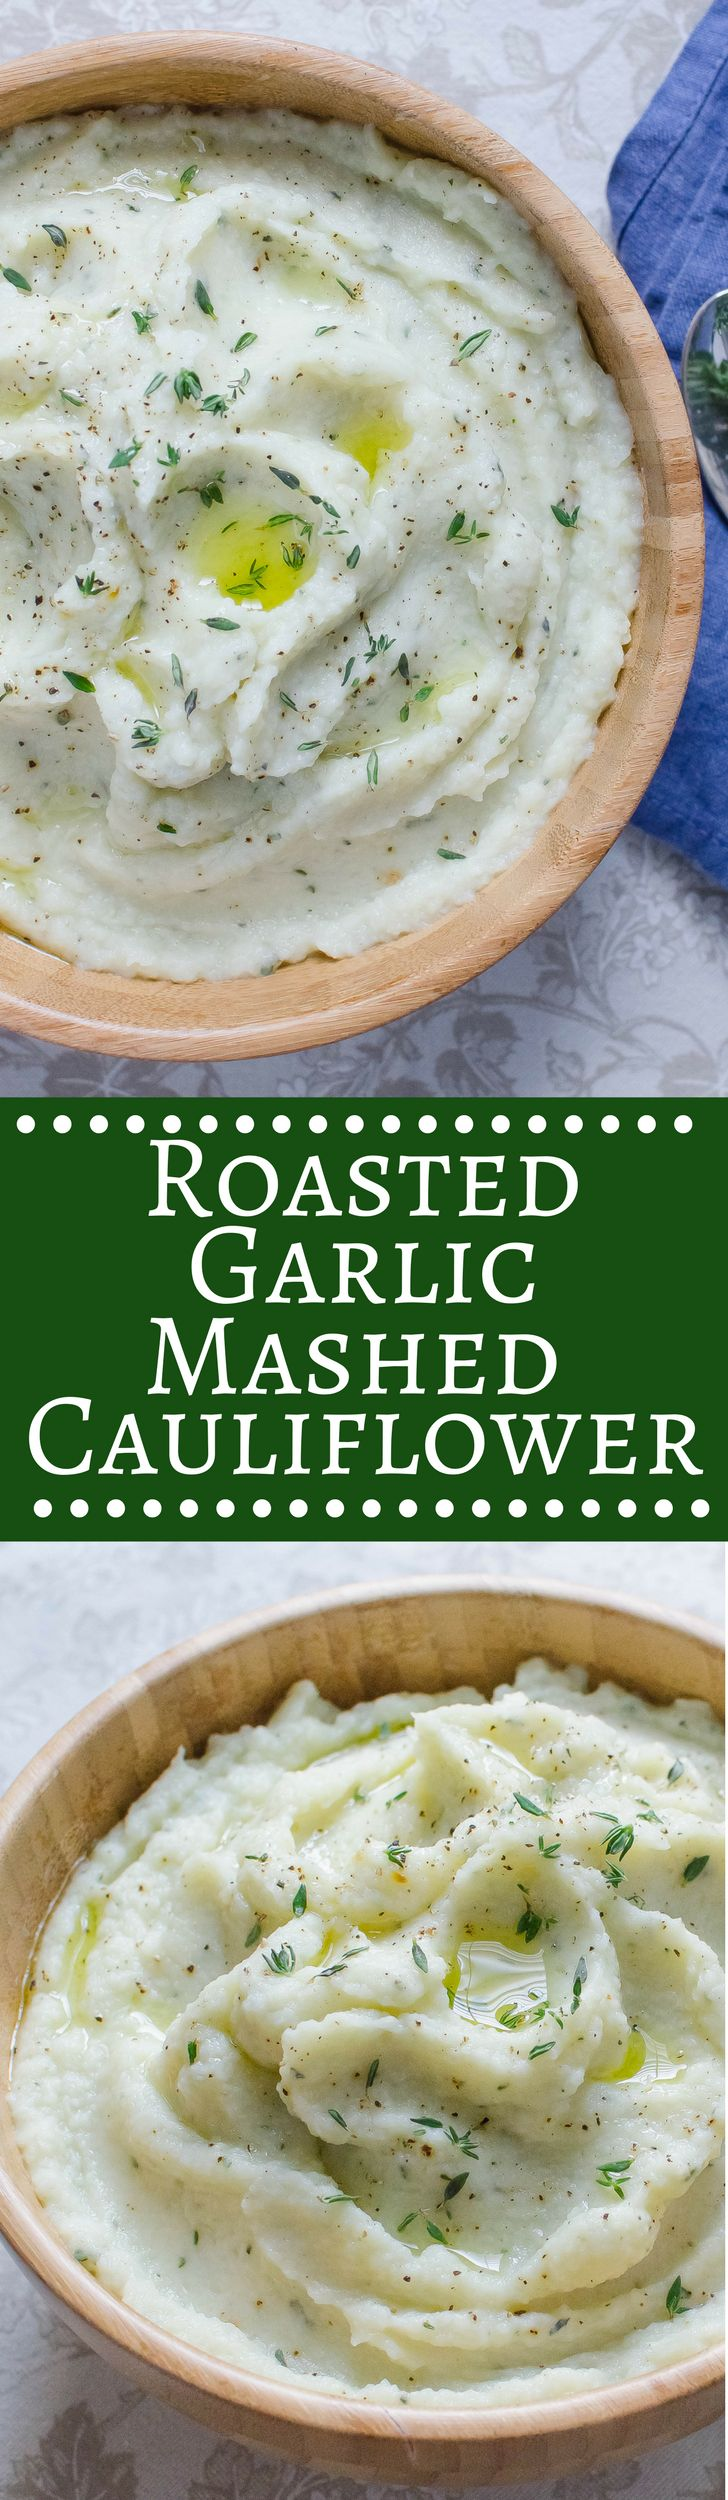 Mashed Cauliflower with Roasted Garlic | Garlic & Zest